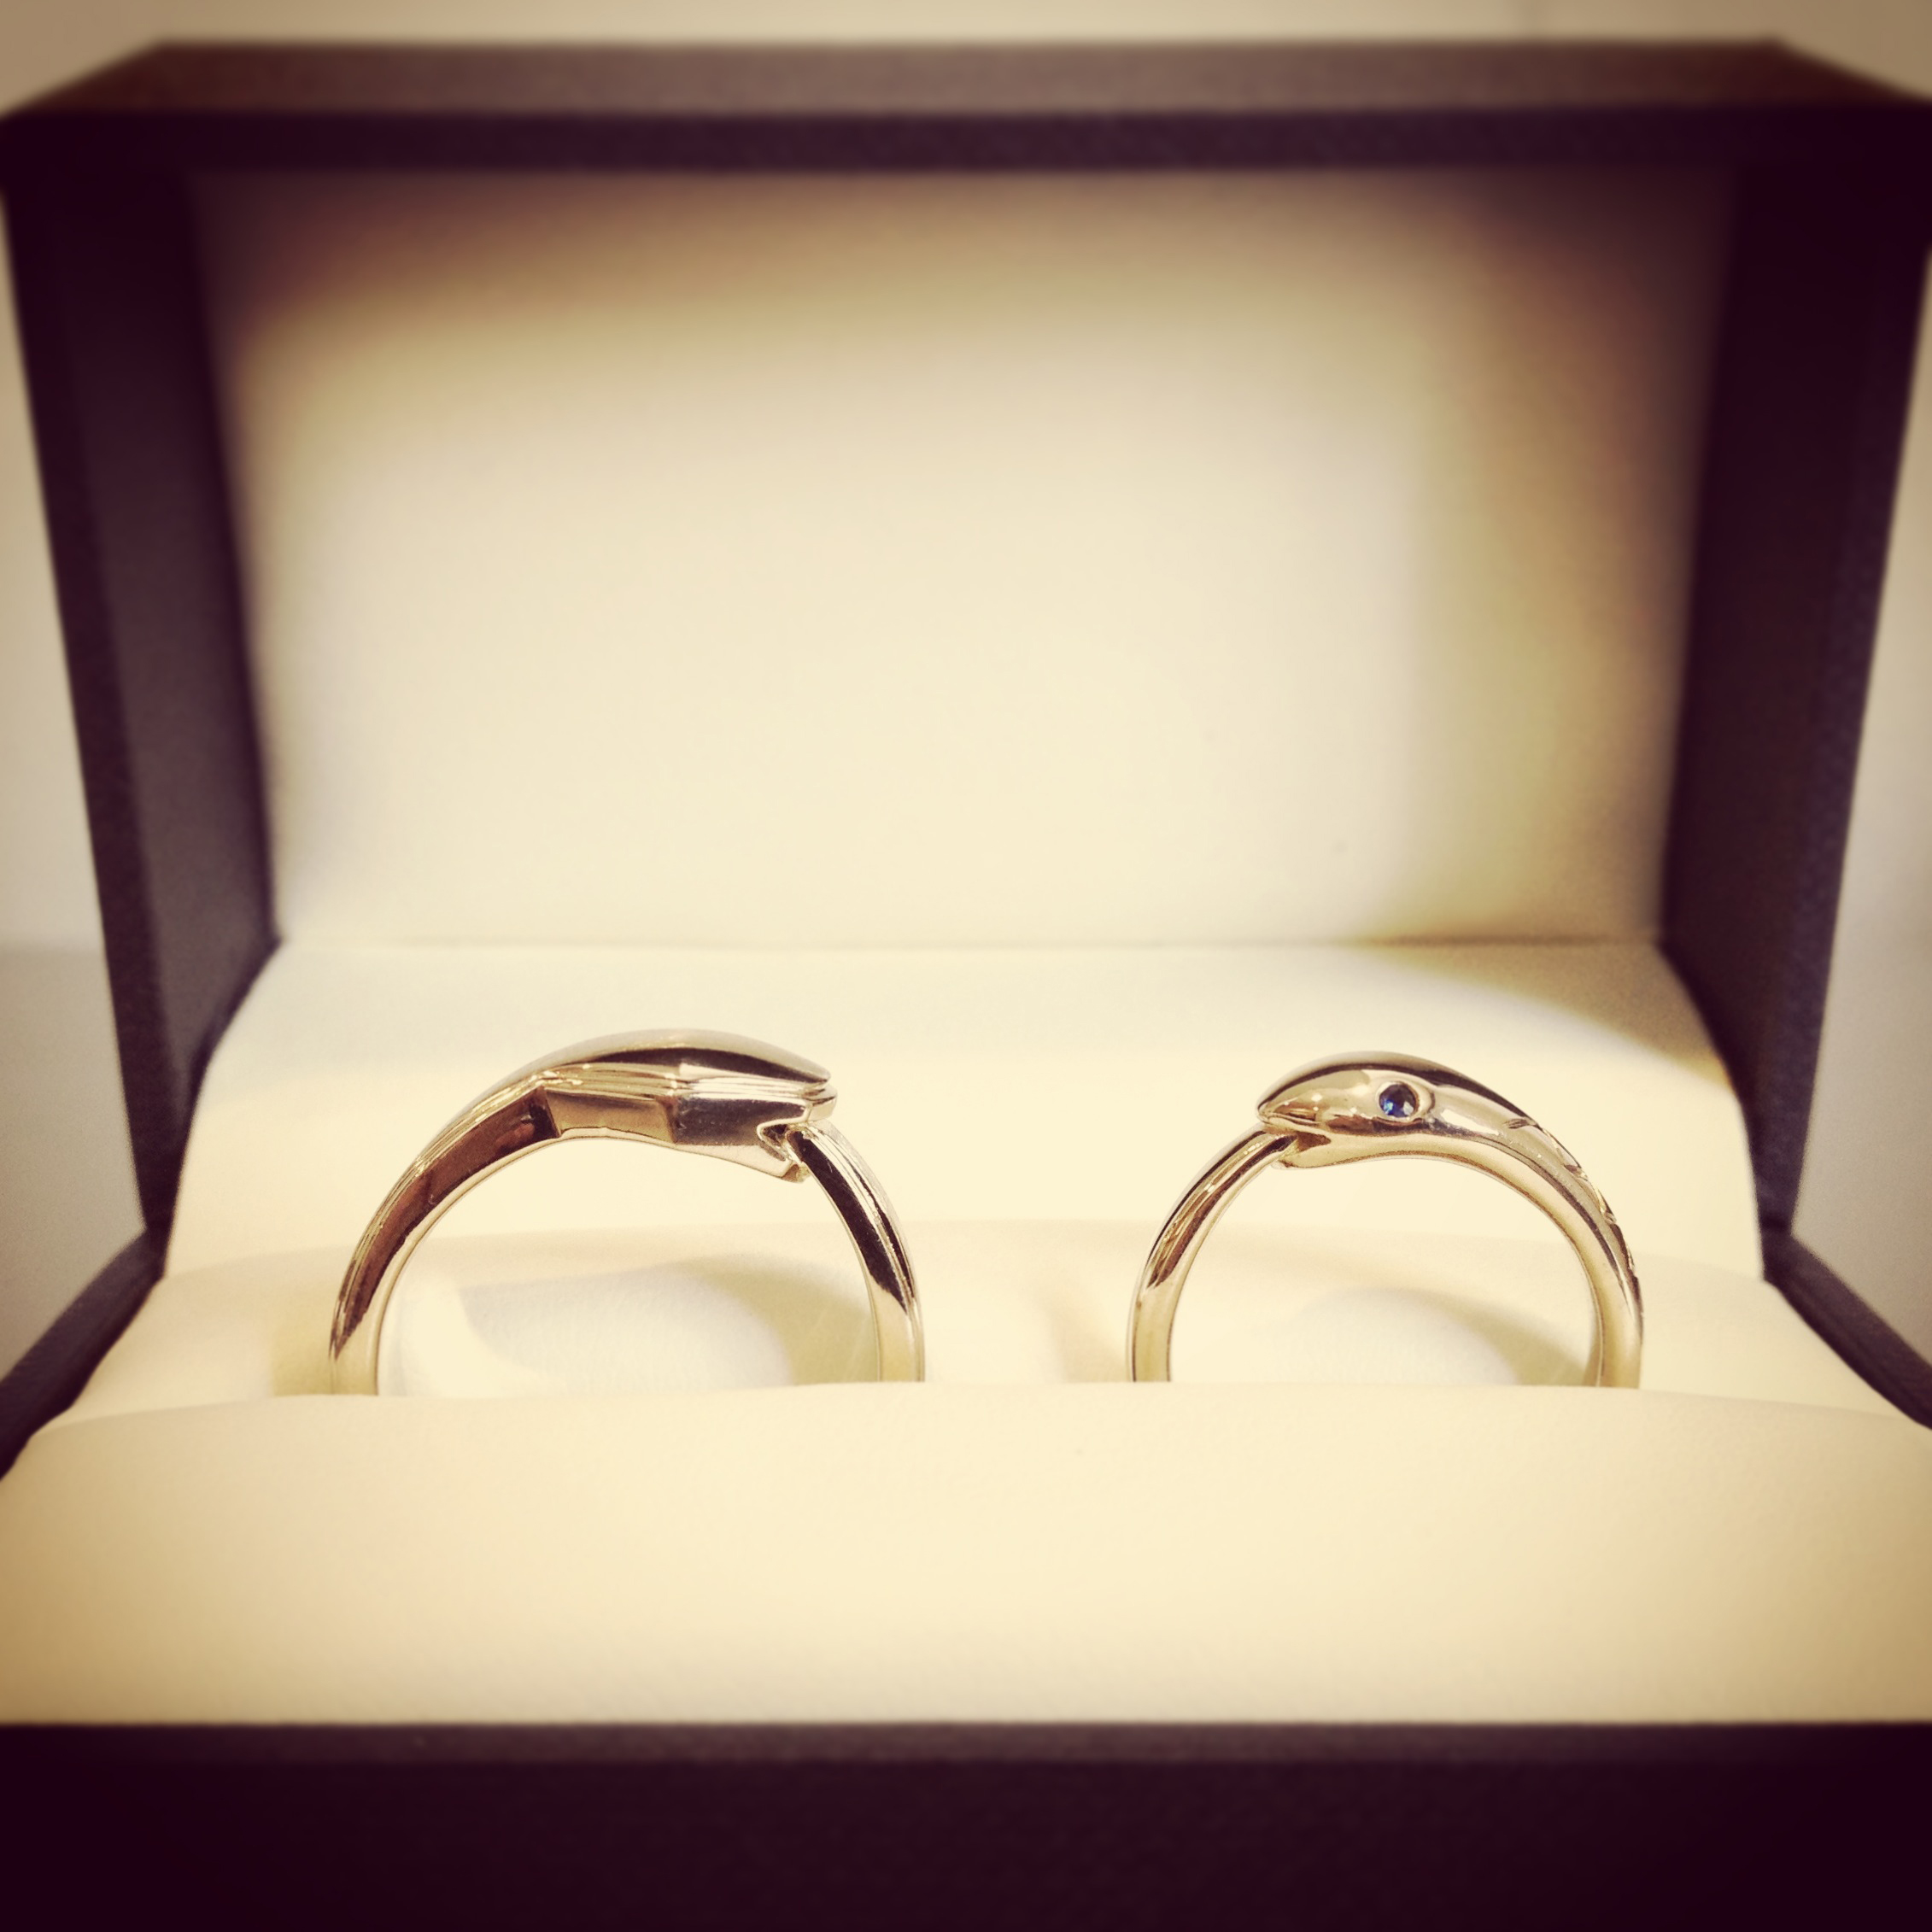 Ouroboros Wedding Rings